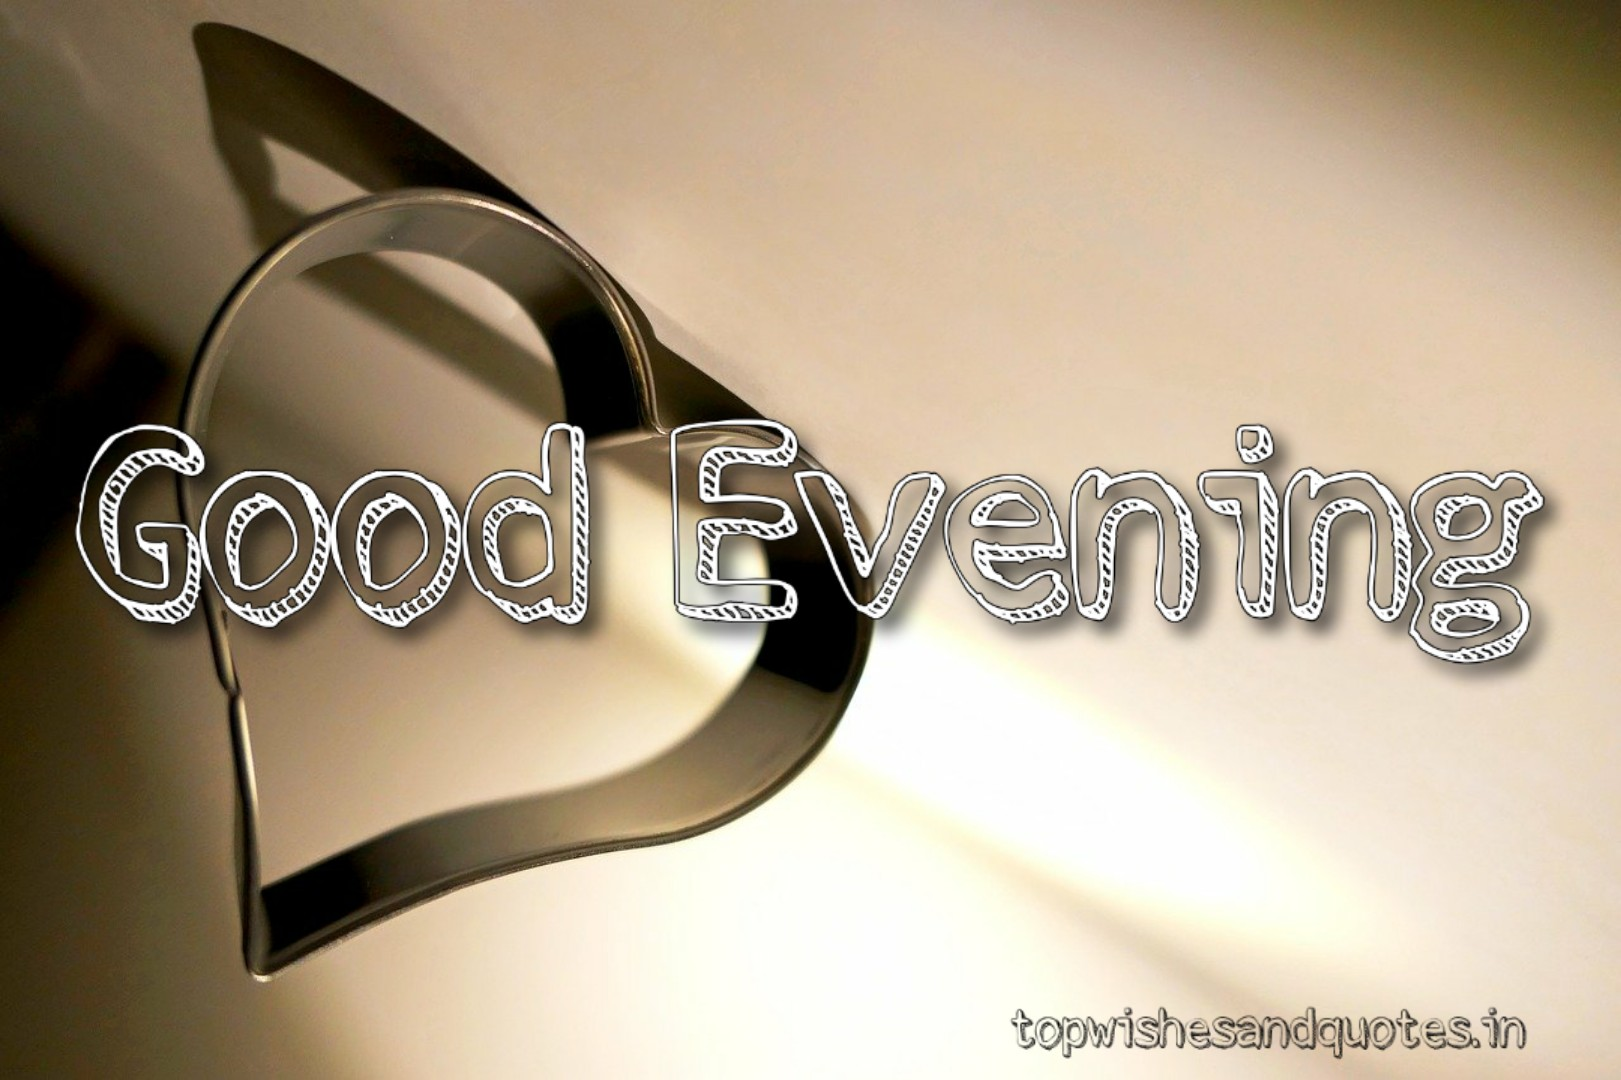 Good Evening wishes Images